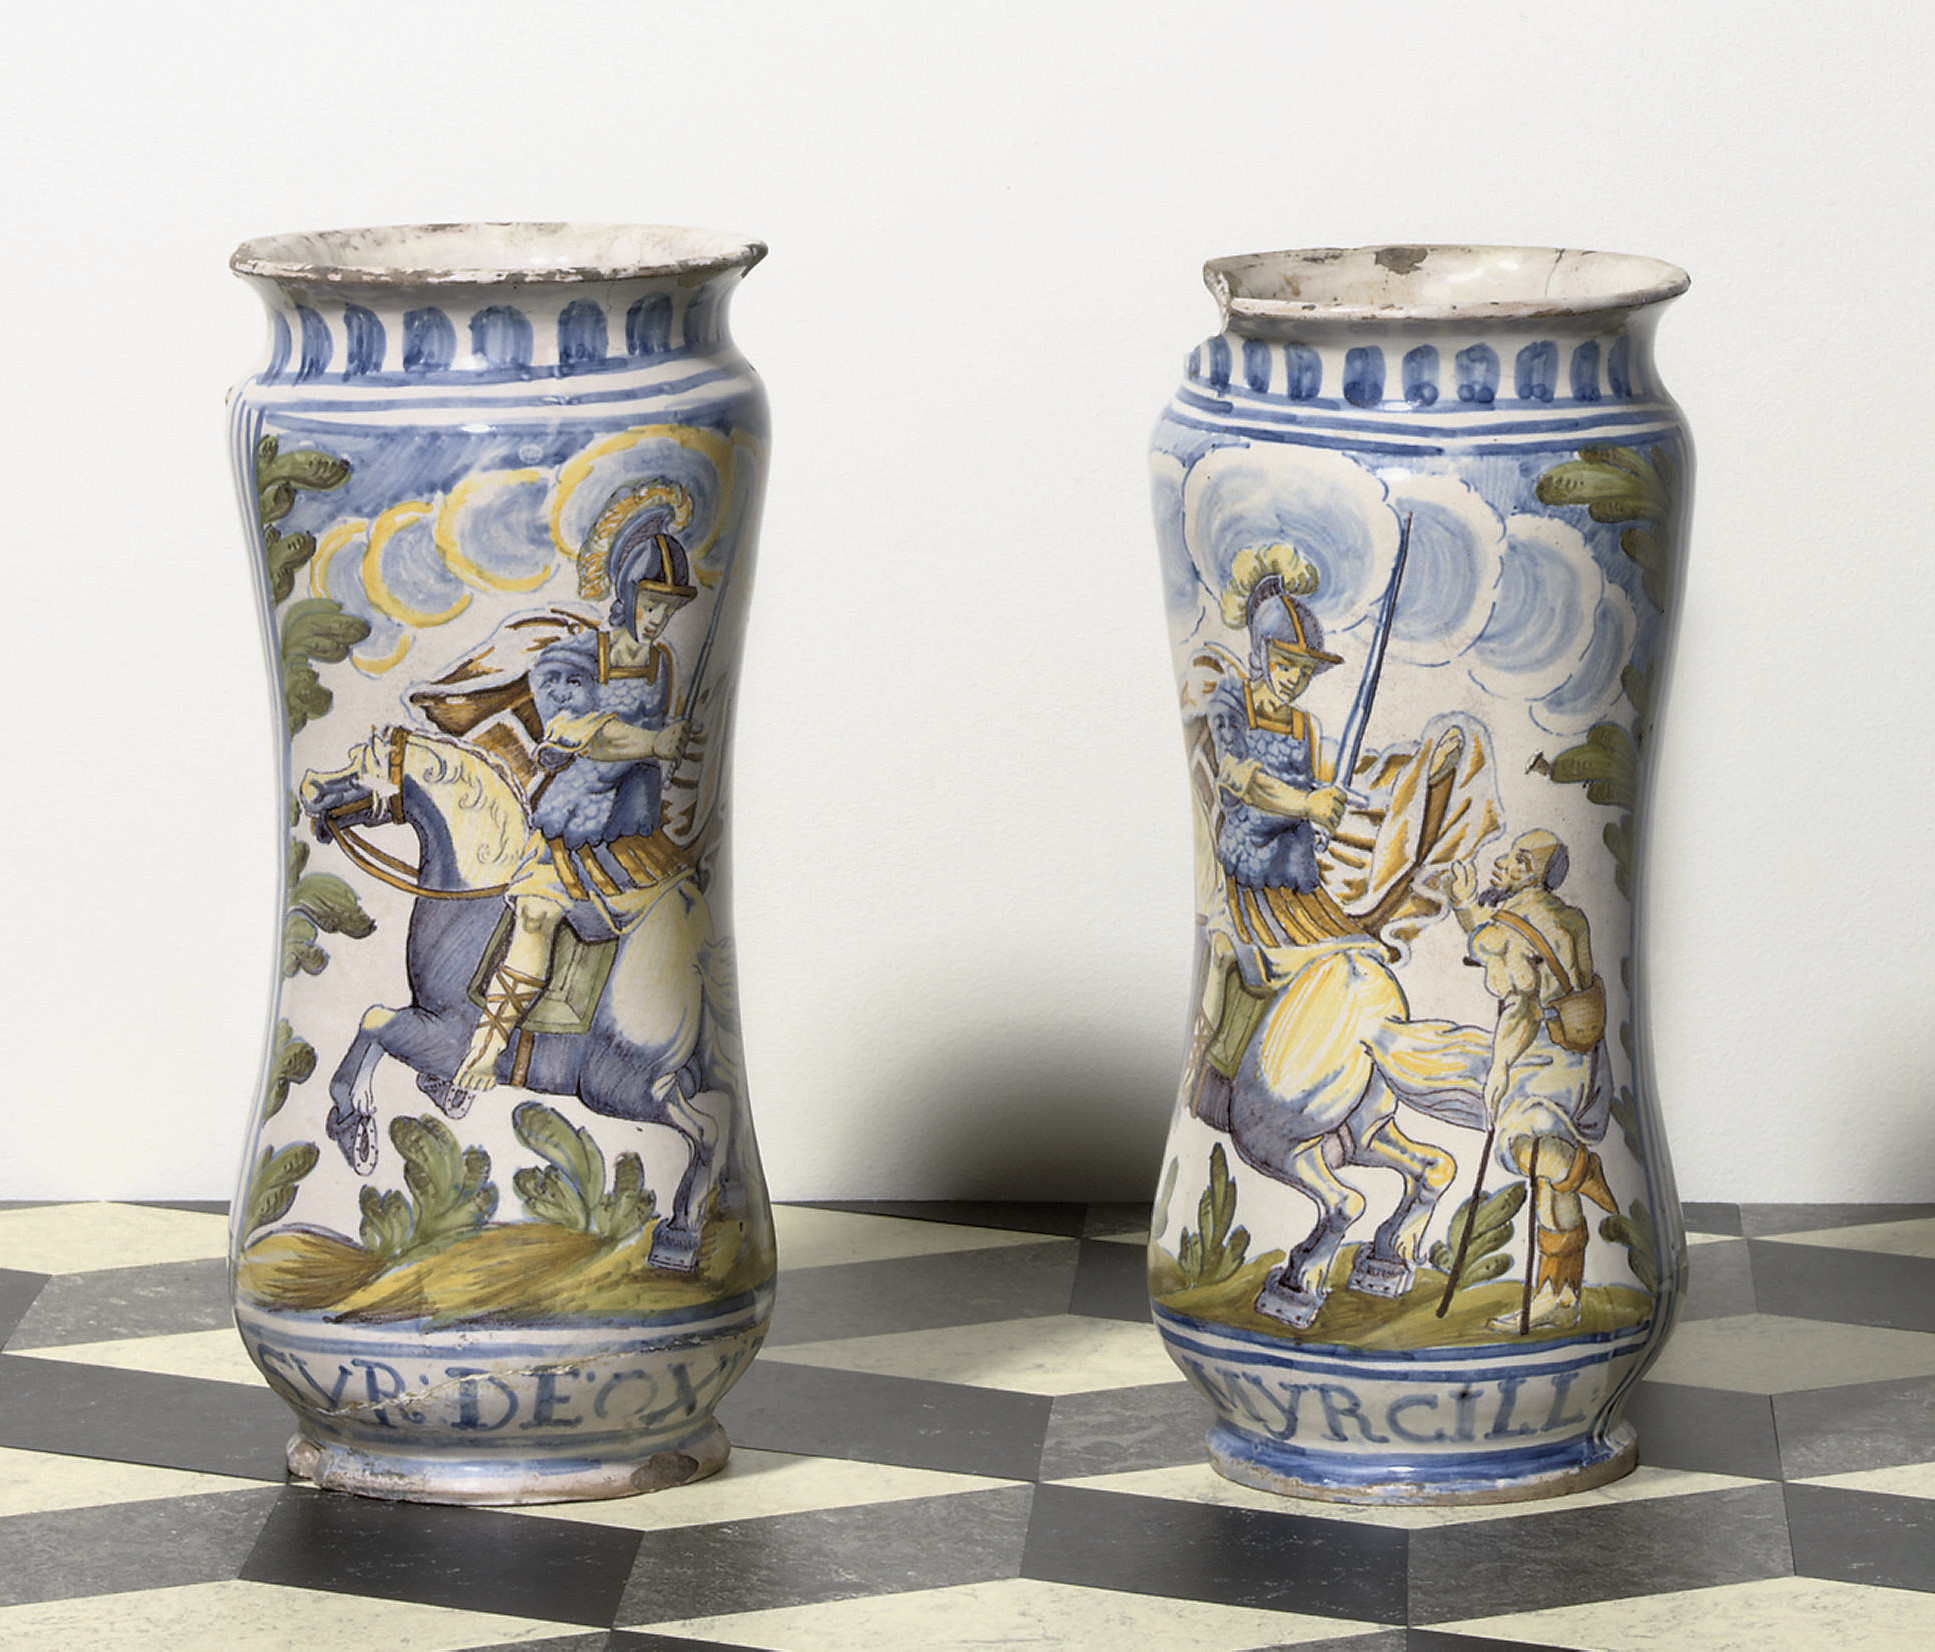 A PAIR OF DATED NAPLES OR CAST